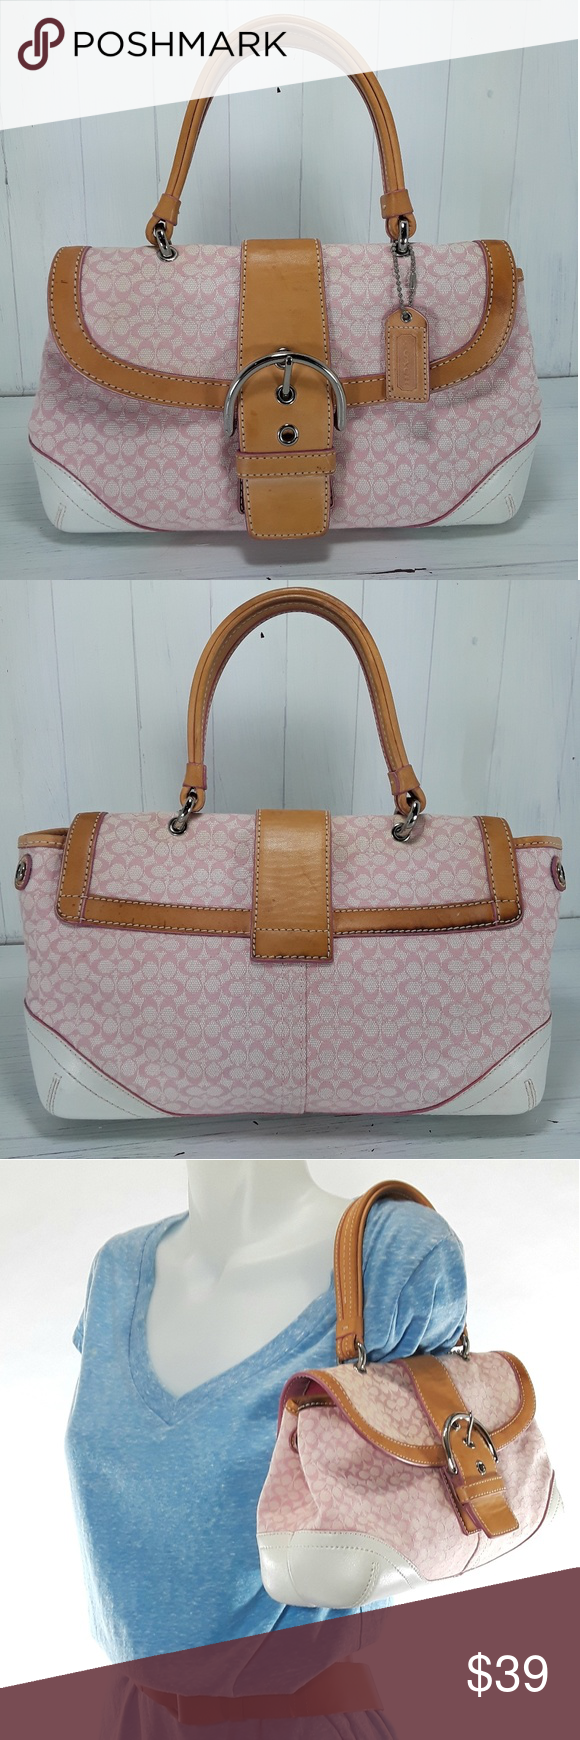 6e024c49f28 Coach Pink Canvas Leather Trim Small Bag Monogrammed canvas with tan and  white leather trim, flap over with a magnetic button closure, buckled  detail, ...